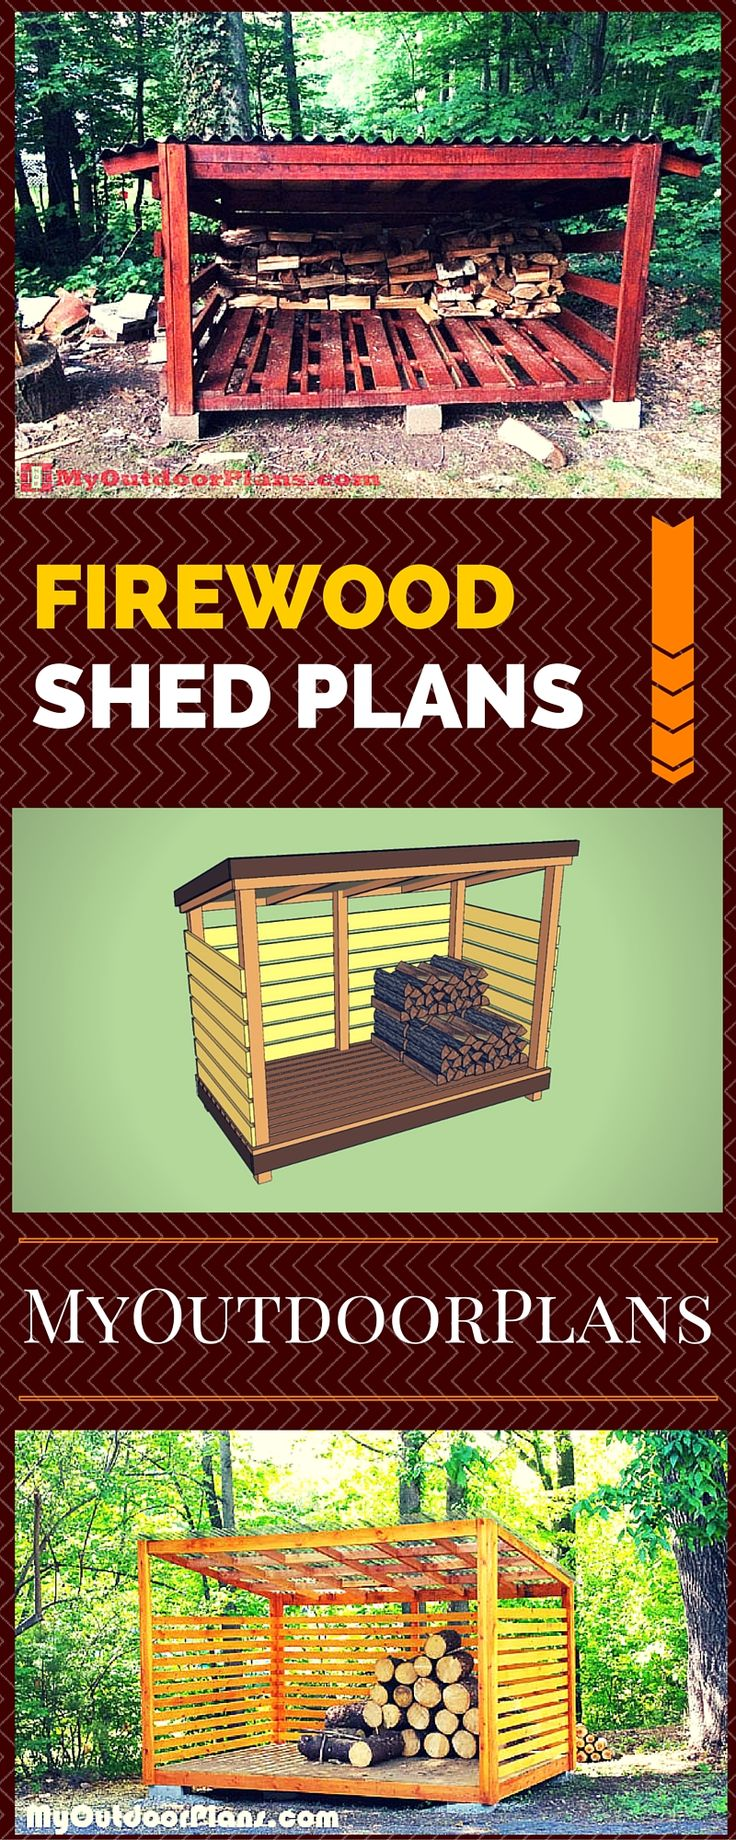 Firewood Shed Plans - Easy to follow instructions, ideas and guides for building a wood storage shed